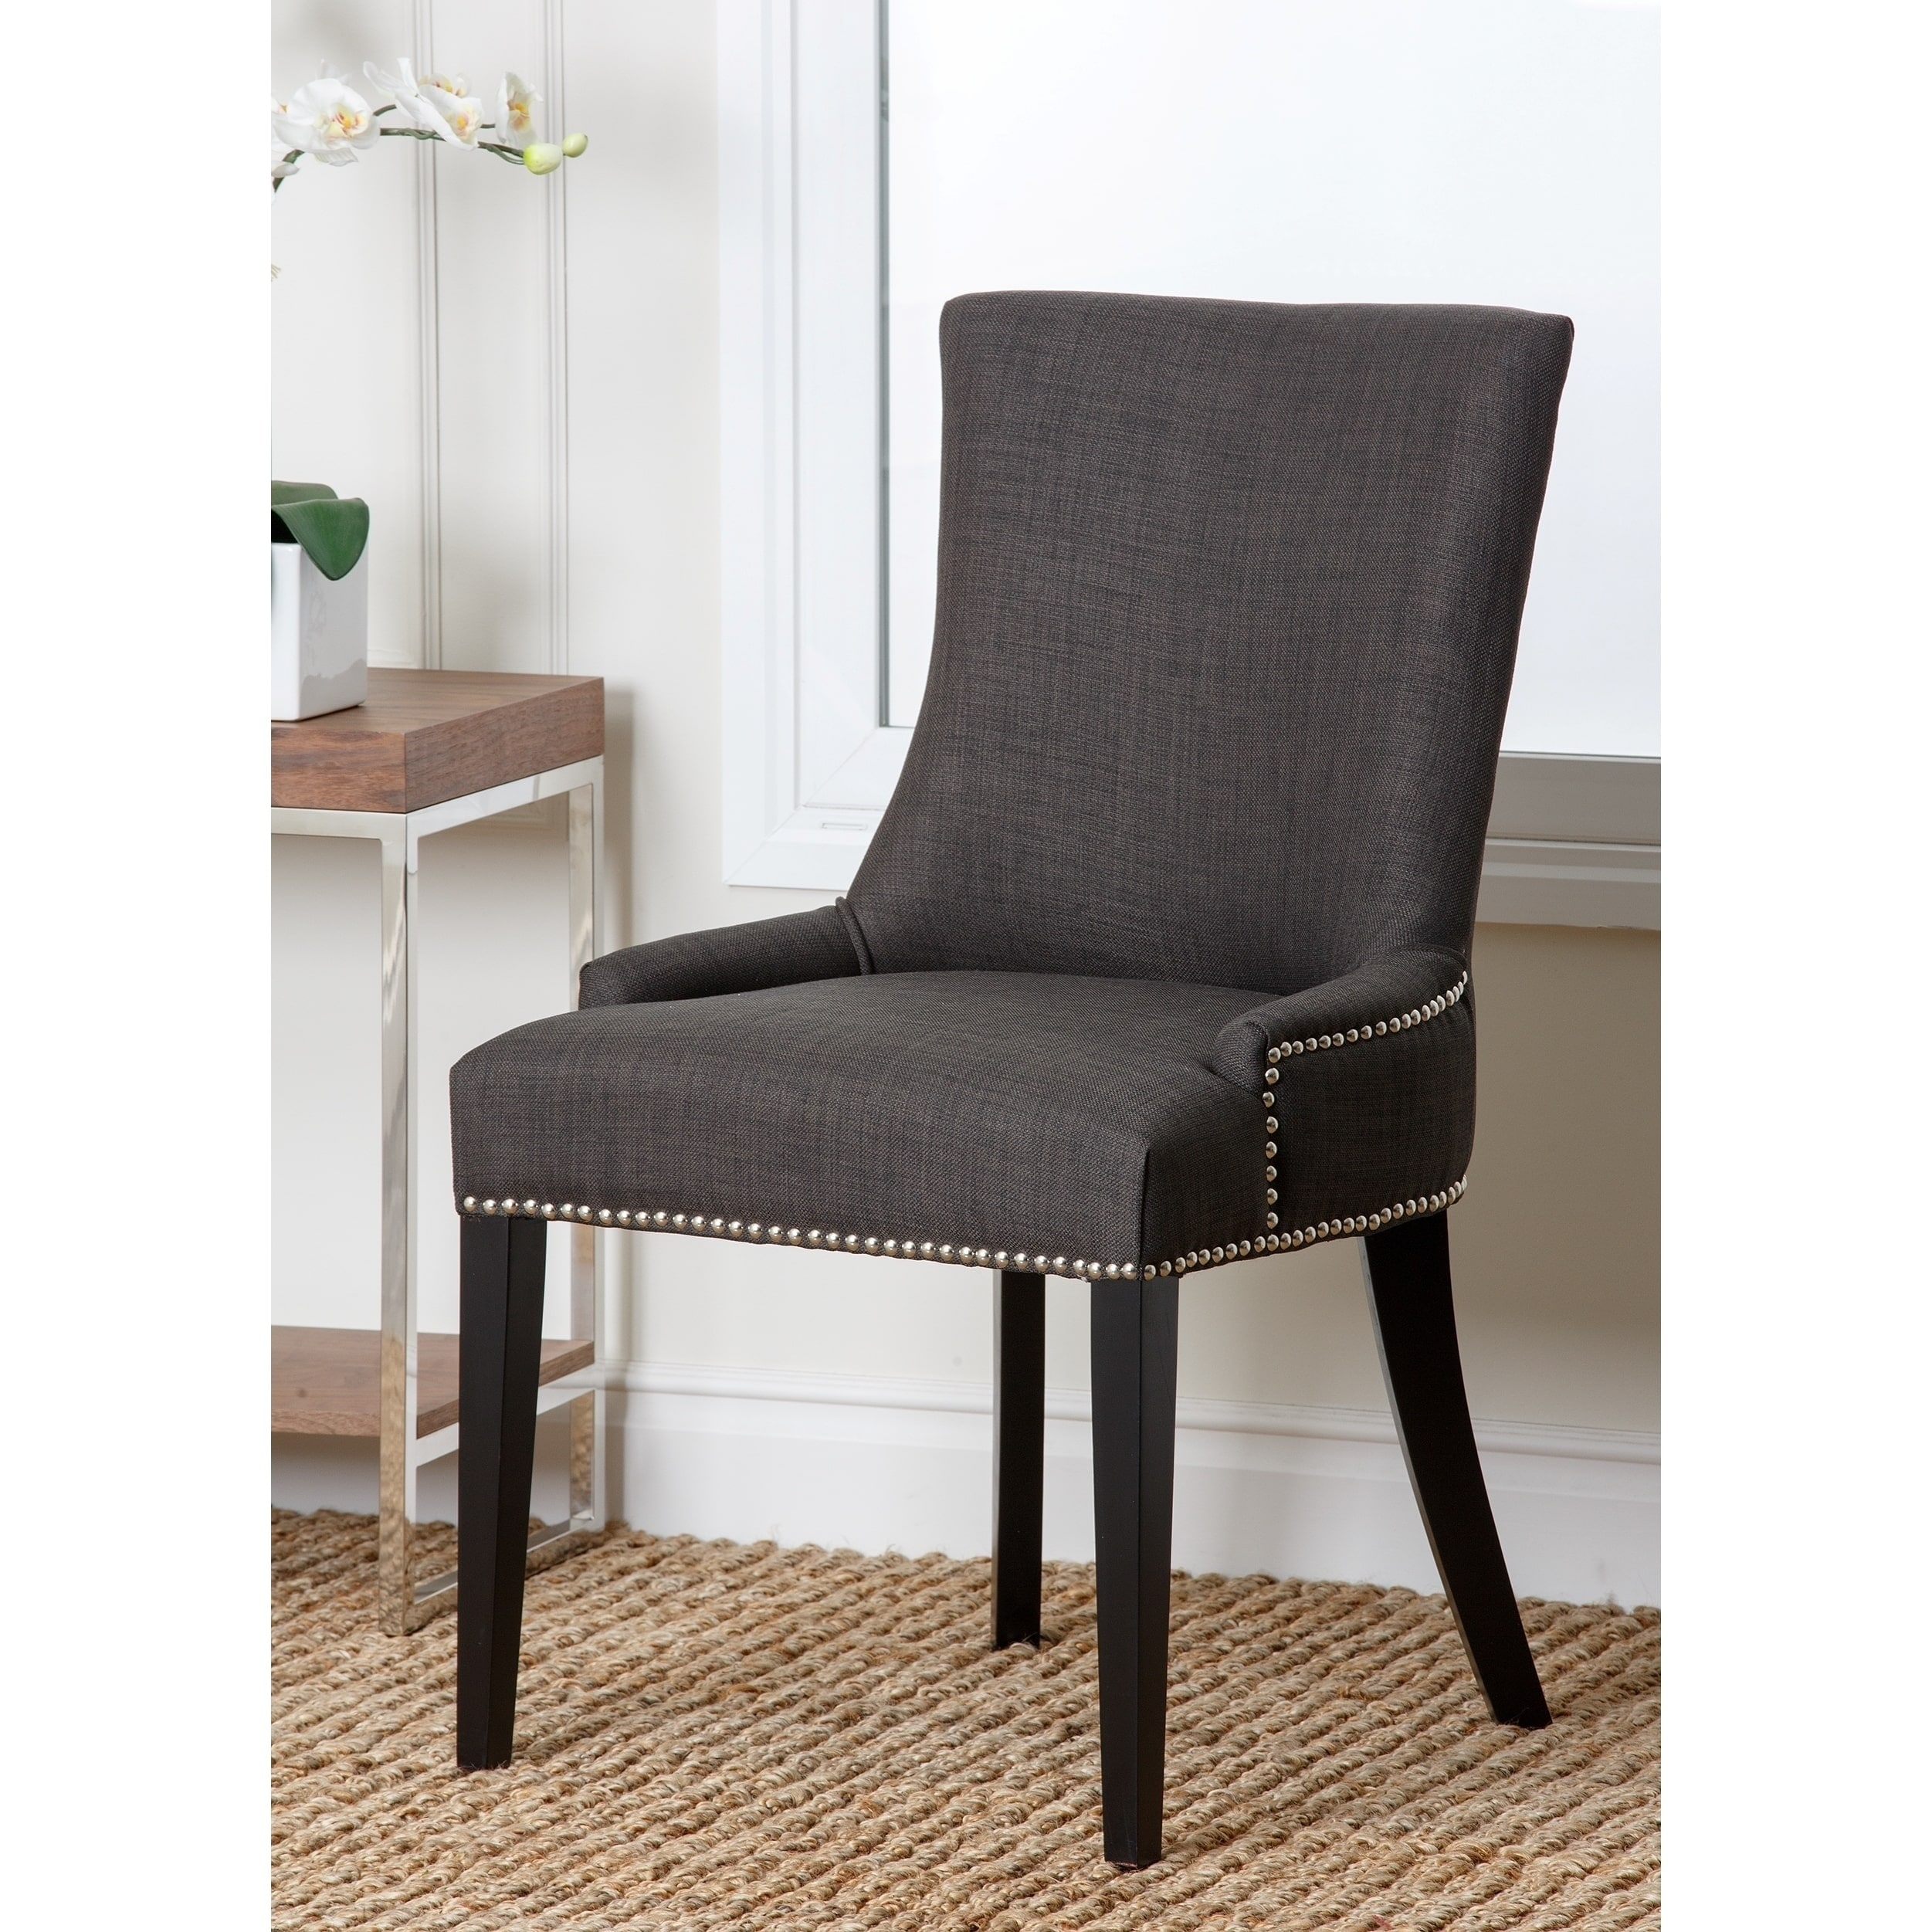 Shop Abbyson Newport Grey Fabric Nailhead Trim Dining Chair   On Sale    Free Shipping Today   Overstock.com   8577955